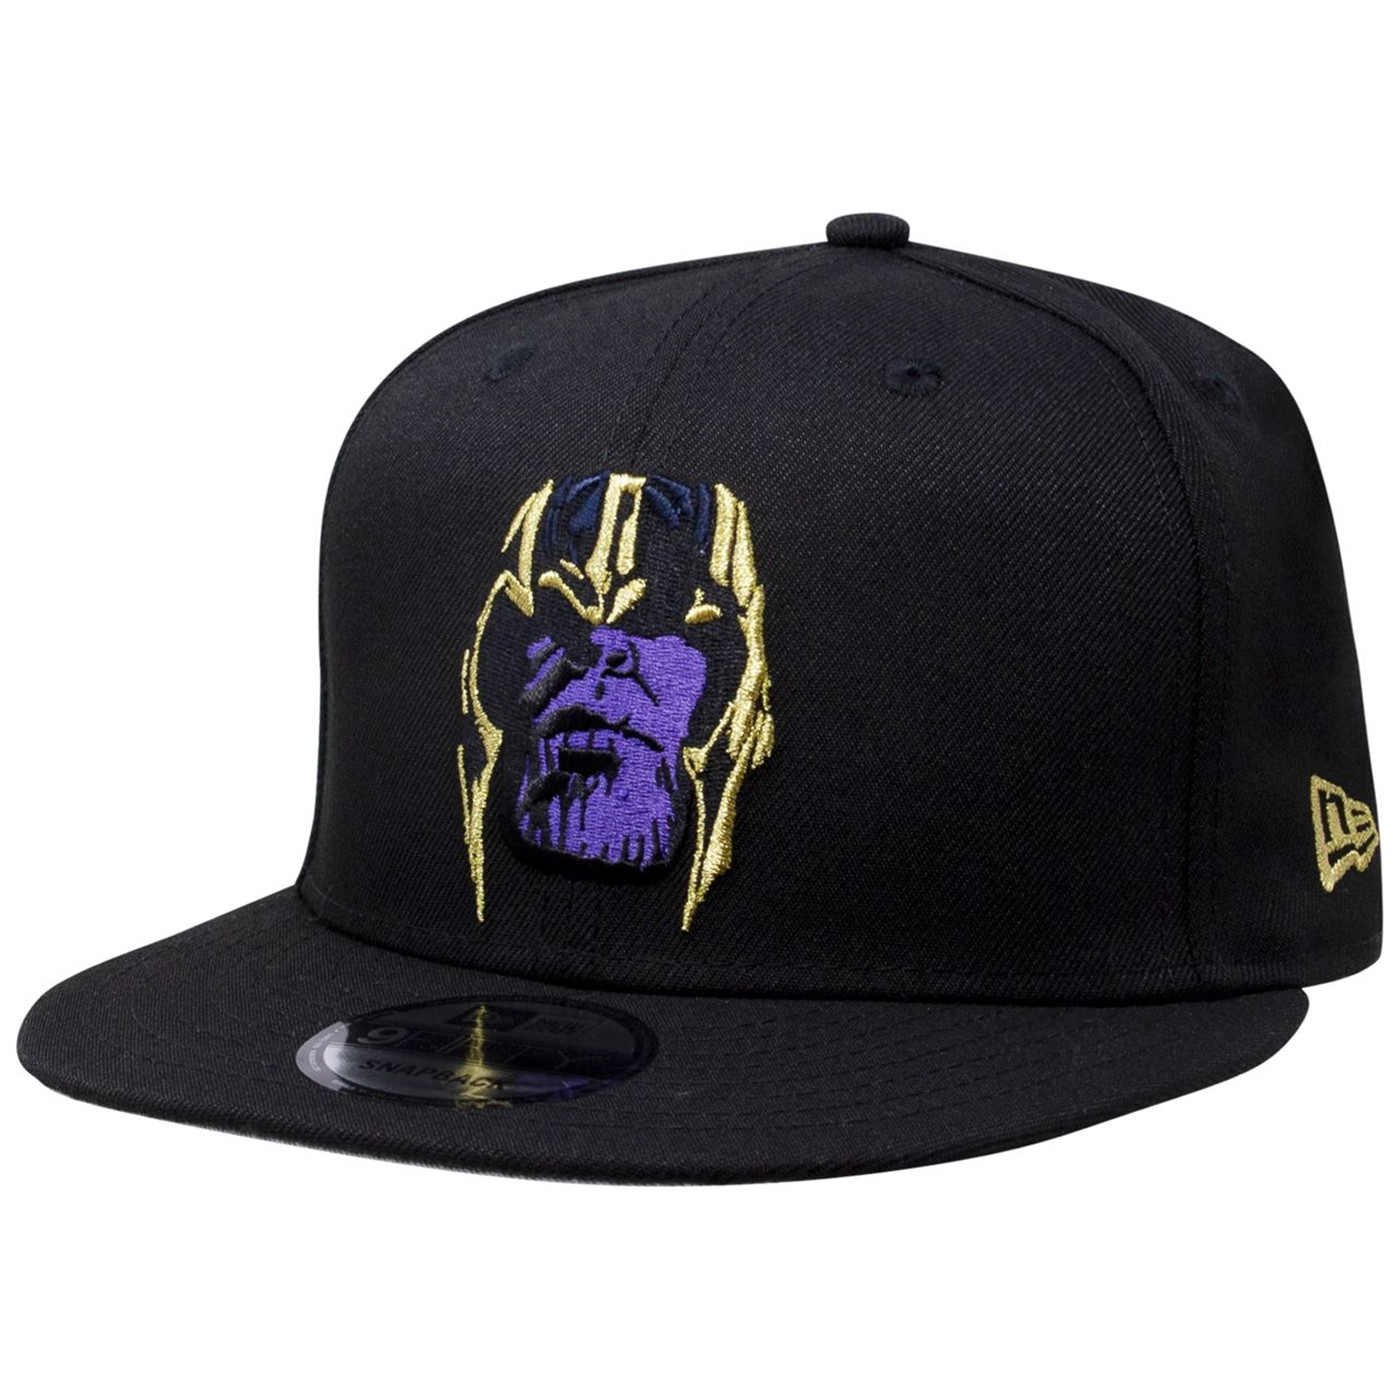 Avengers Endgame Movie Thanos Armored 9Fifty Adjustable Hat